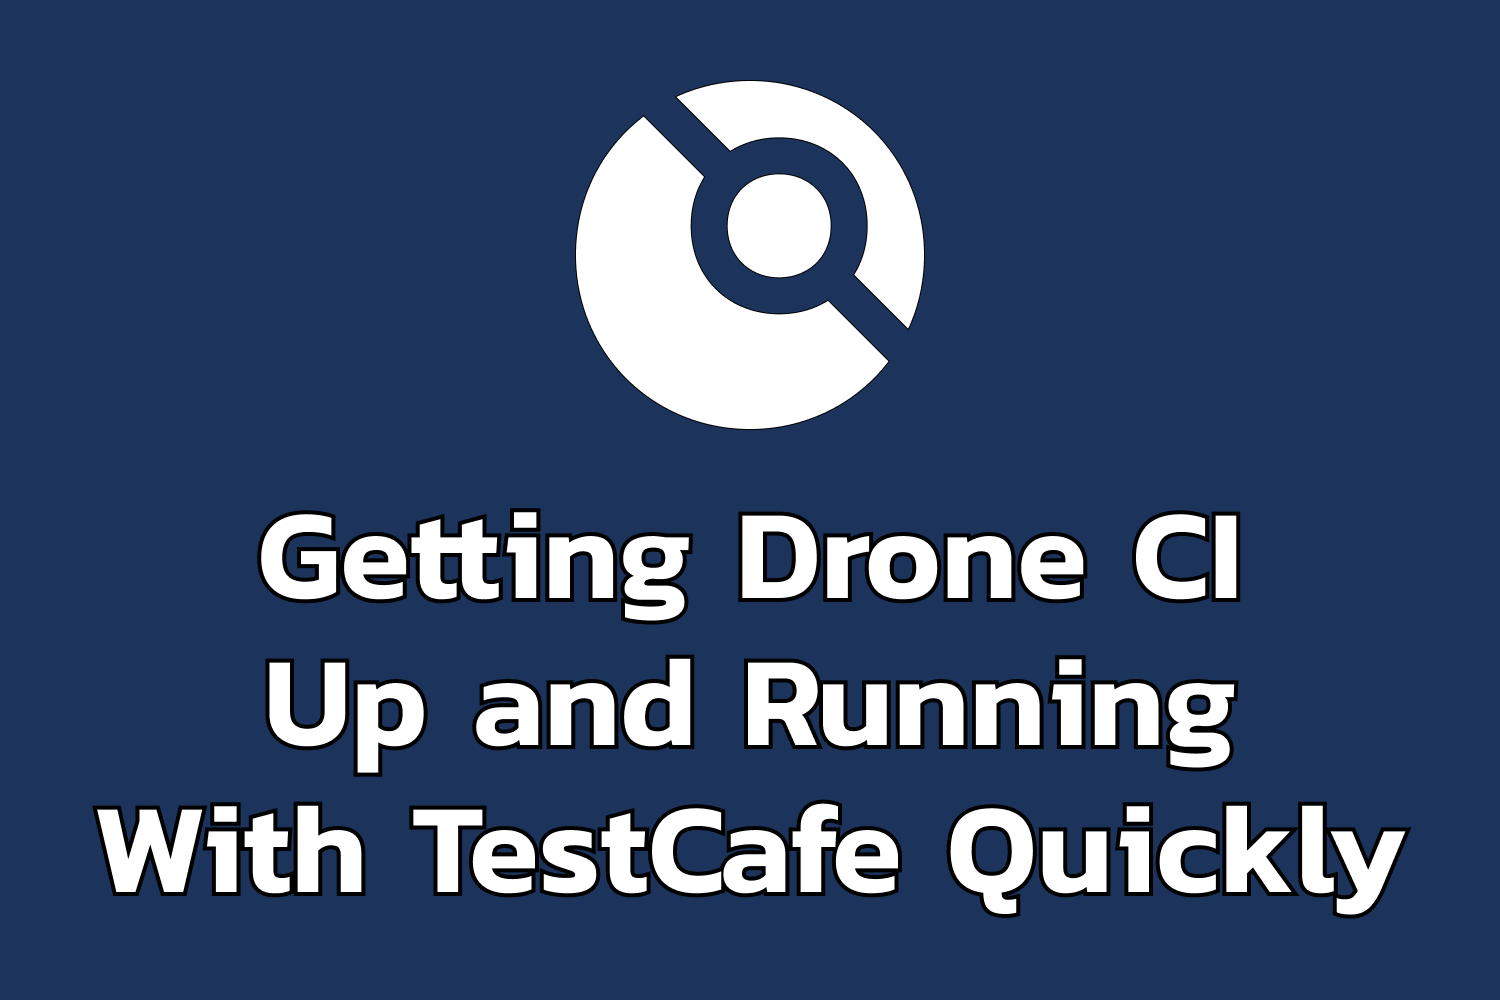 Getting Drone CI Up and Running With TestCafe Quickly